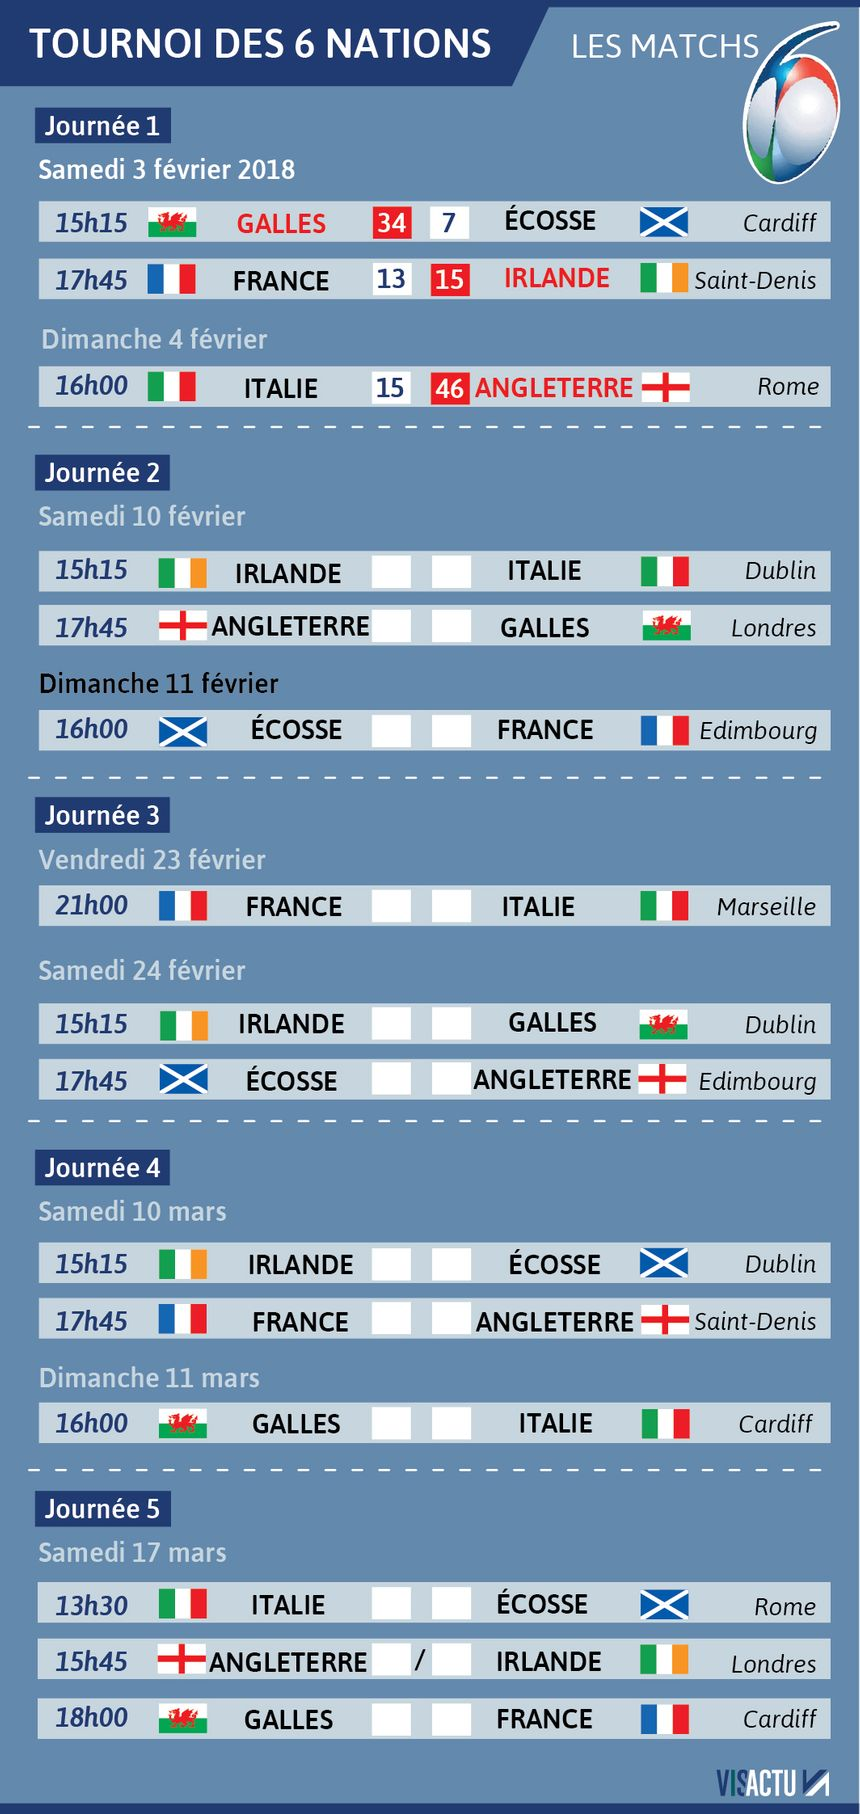 Calendrier 6 Nation 2019.Tournoi Des 6 Nations 2019 Calendrier